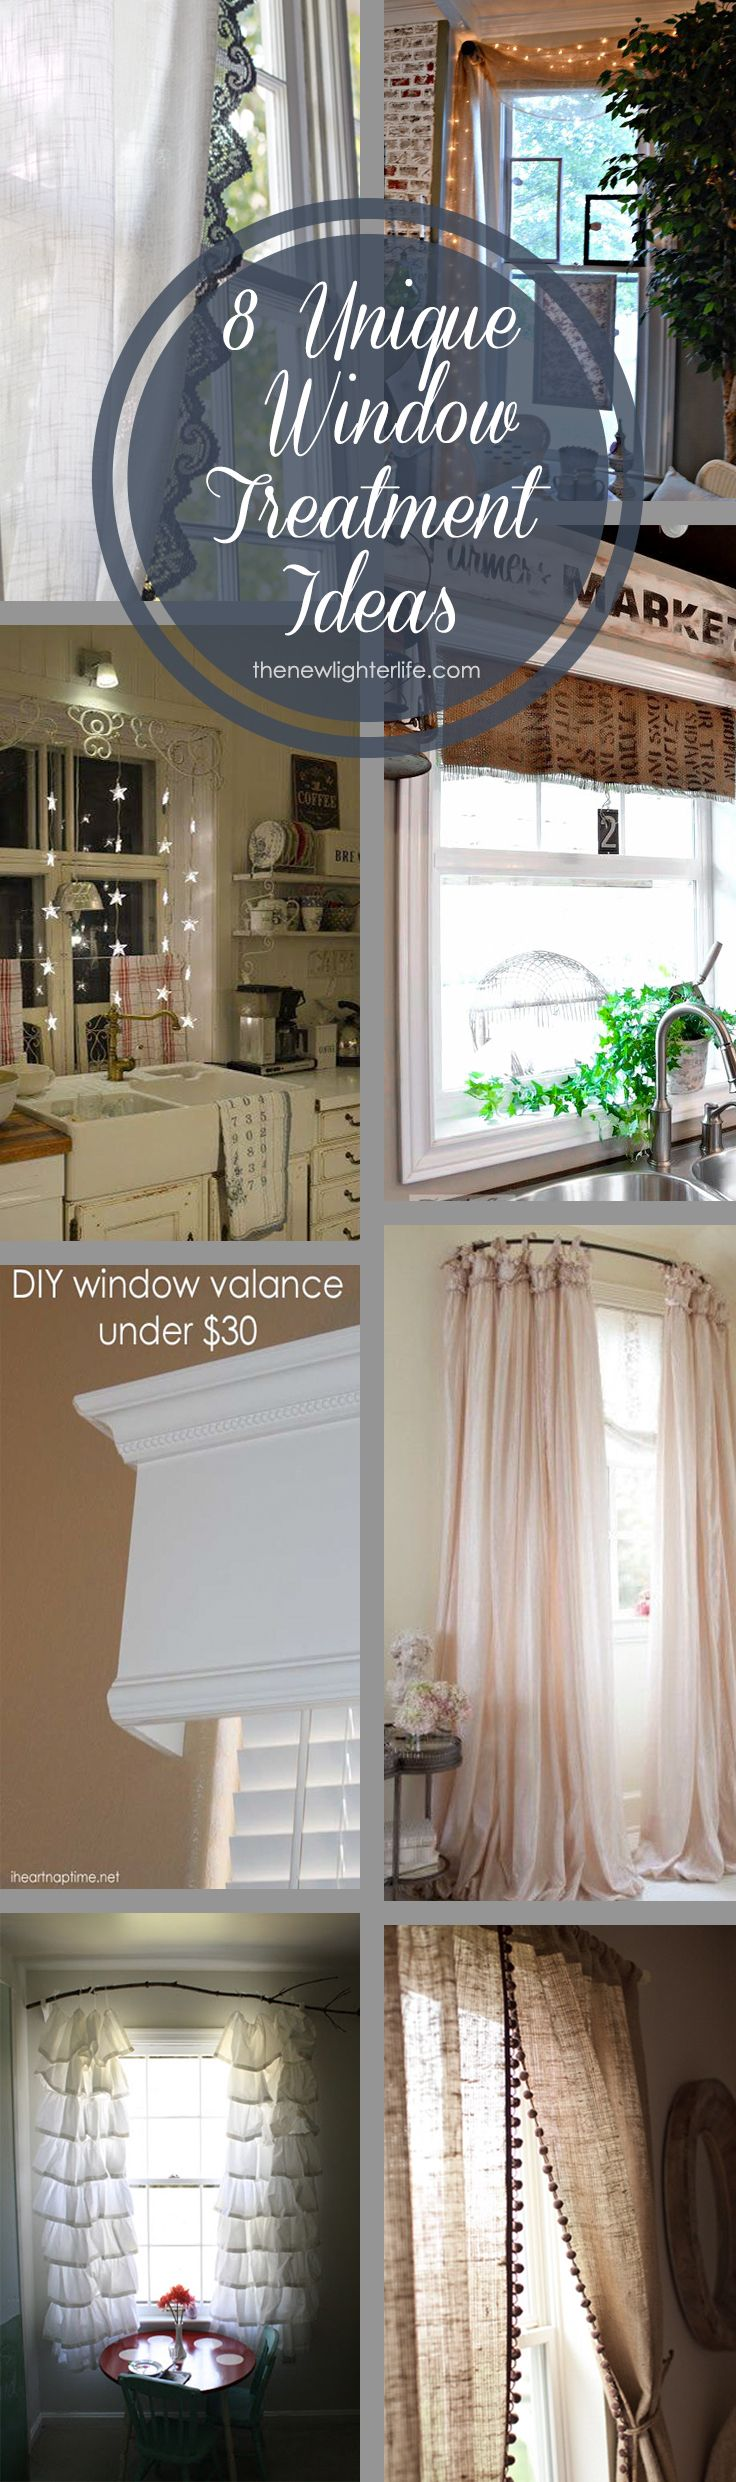 Unique window treatments - Best 25 Unique Window Treatments Ideas Only On Pinterest Vintage Window Treatments Rustic Window Treatments And Window Scroll